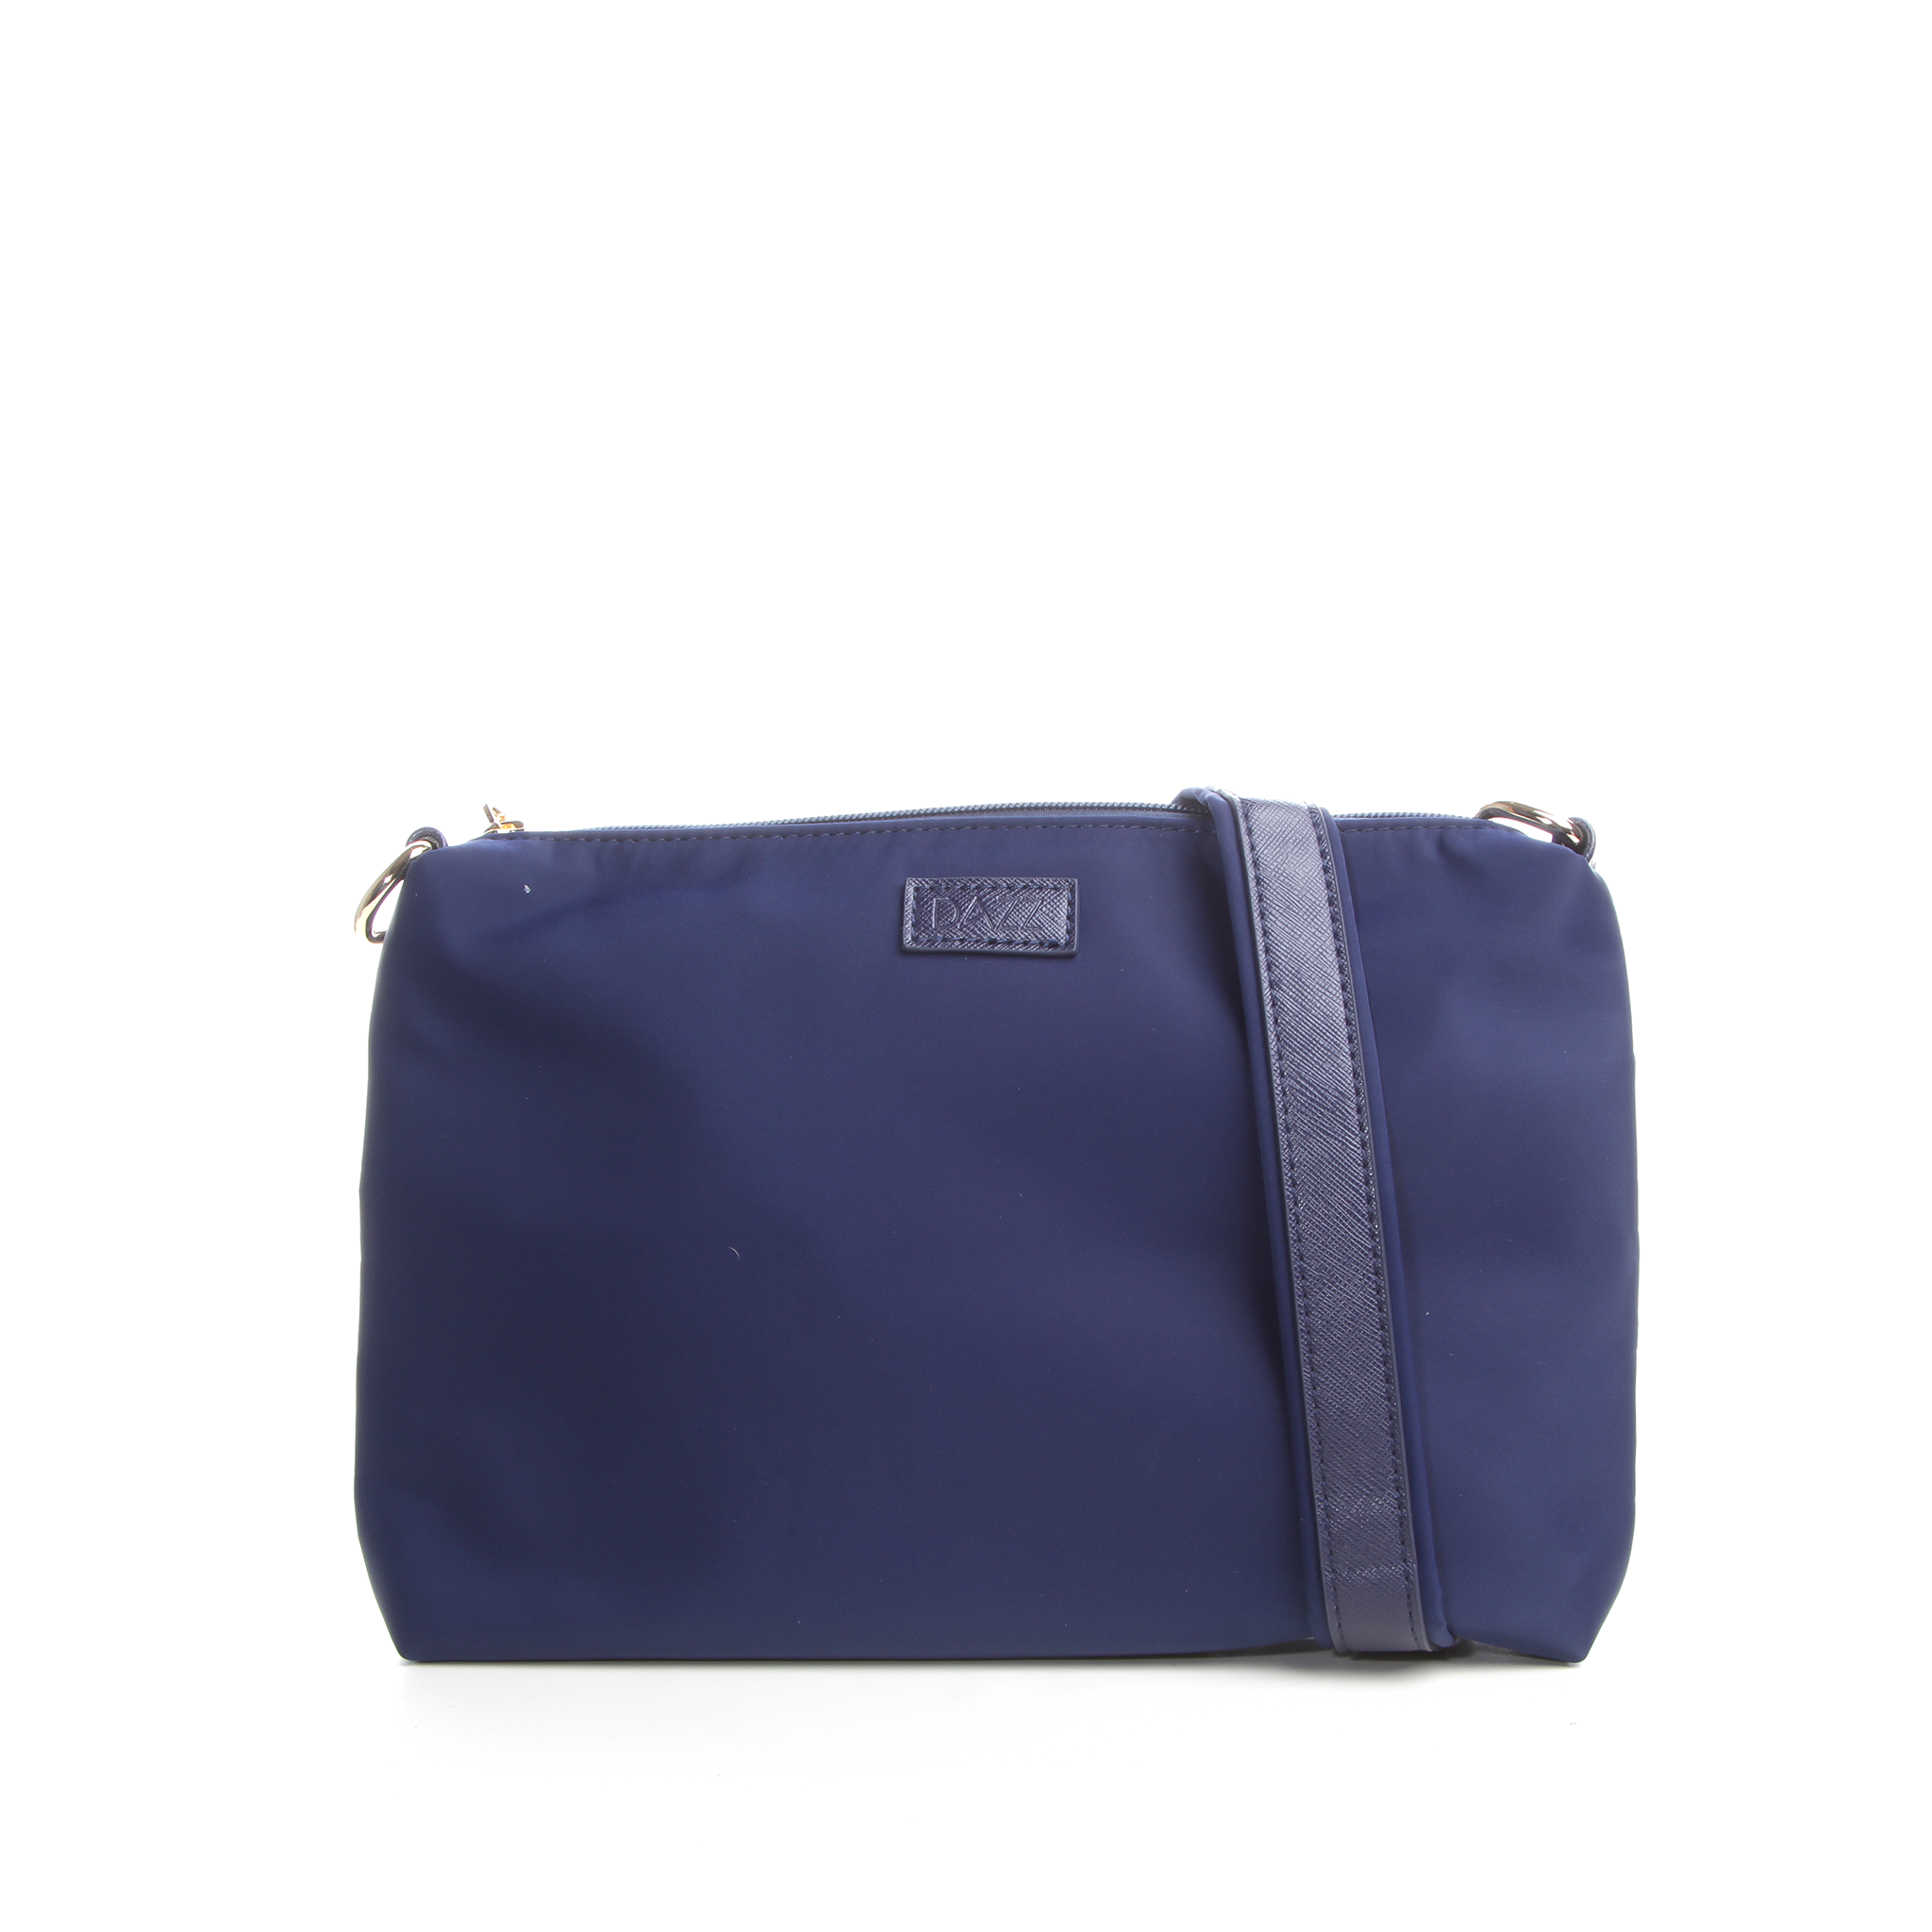 On the Go 'Midnight Blue' 4-in-1 Bag by DAZZ